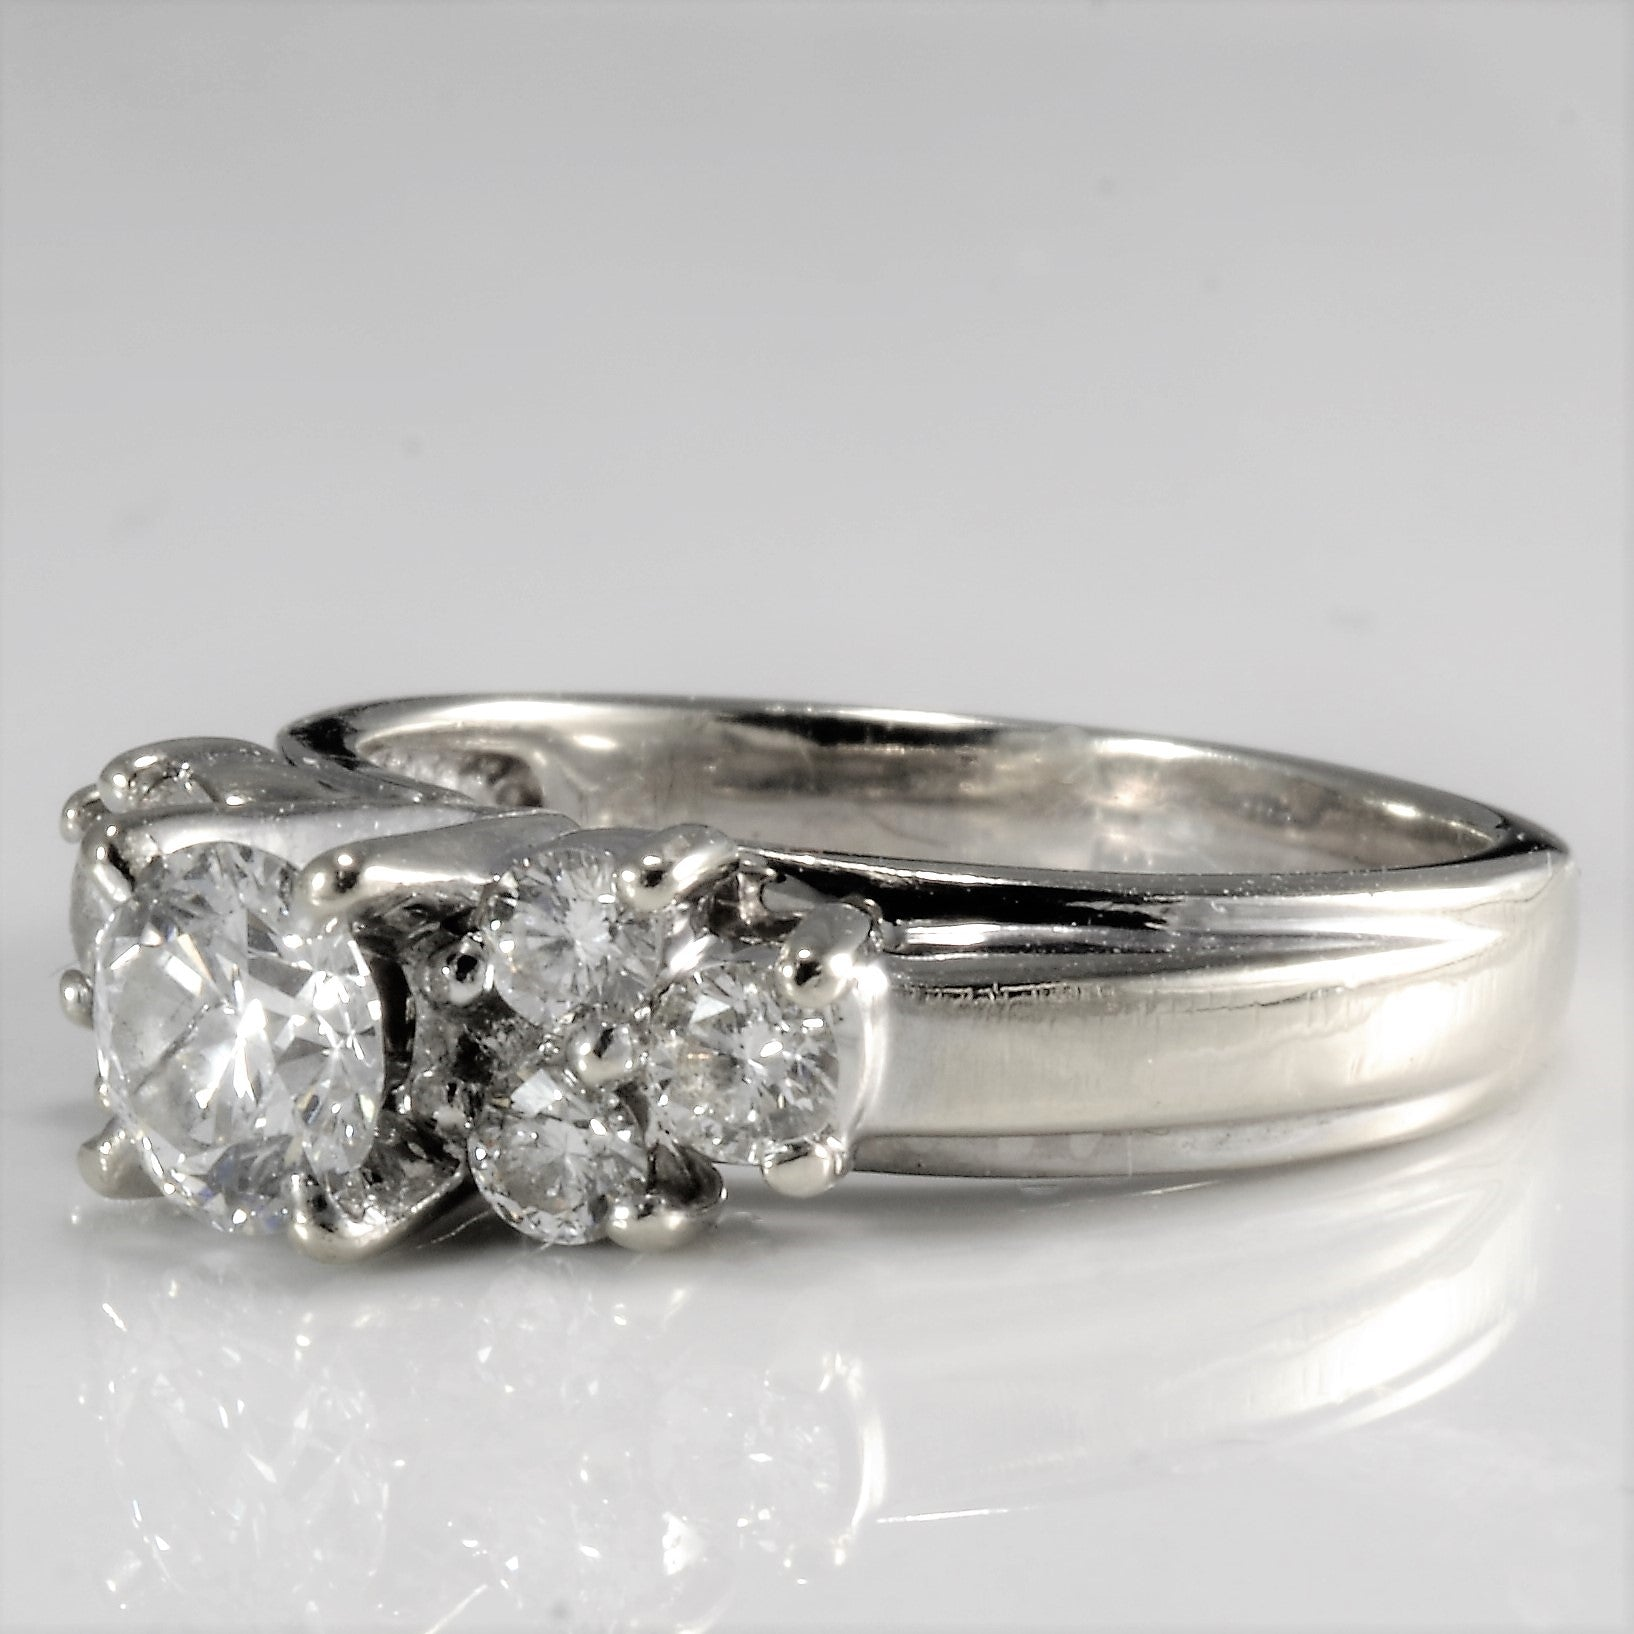 High Set Cluster Diamond Engagement Ring | 0.91 ctw, SZ 5.75 |